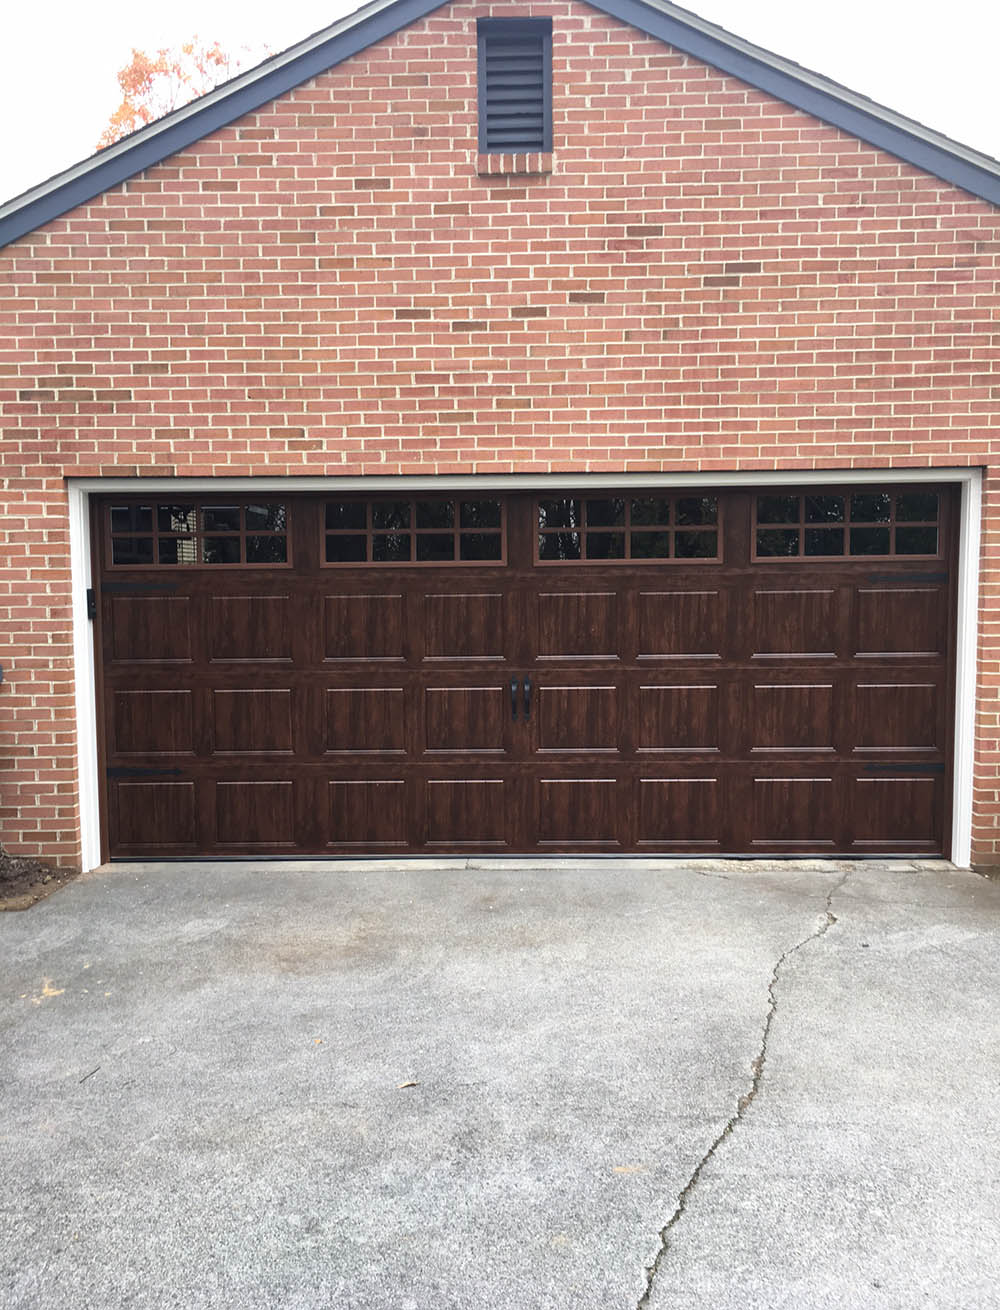 ... Garage Door Loudoun Garage Door Images : Loudoun Garage Door | Photo  Gallery ...